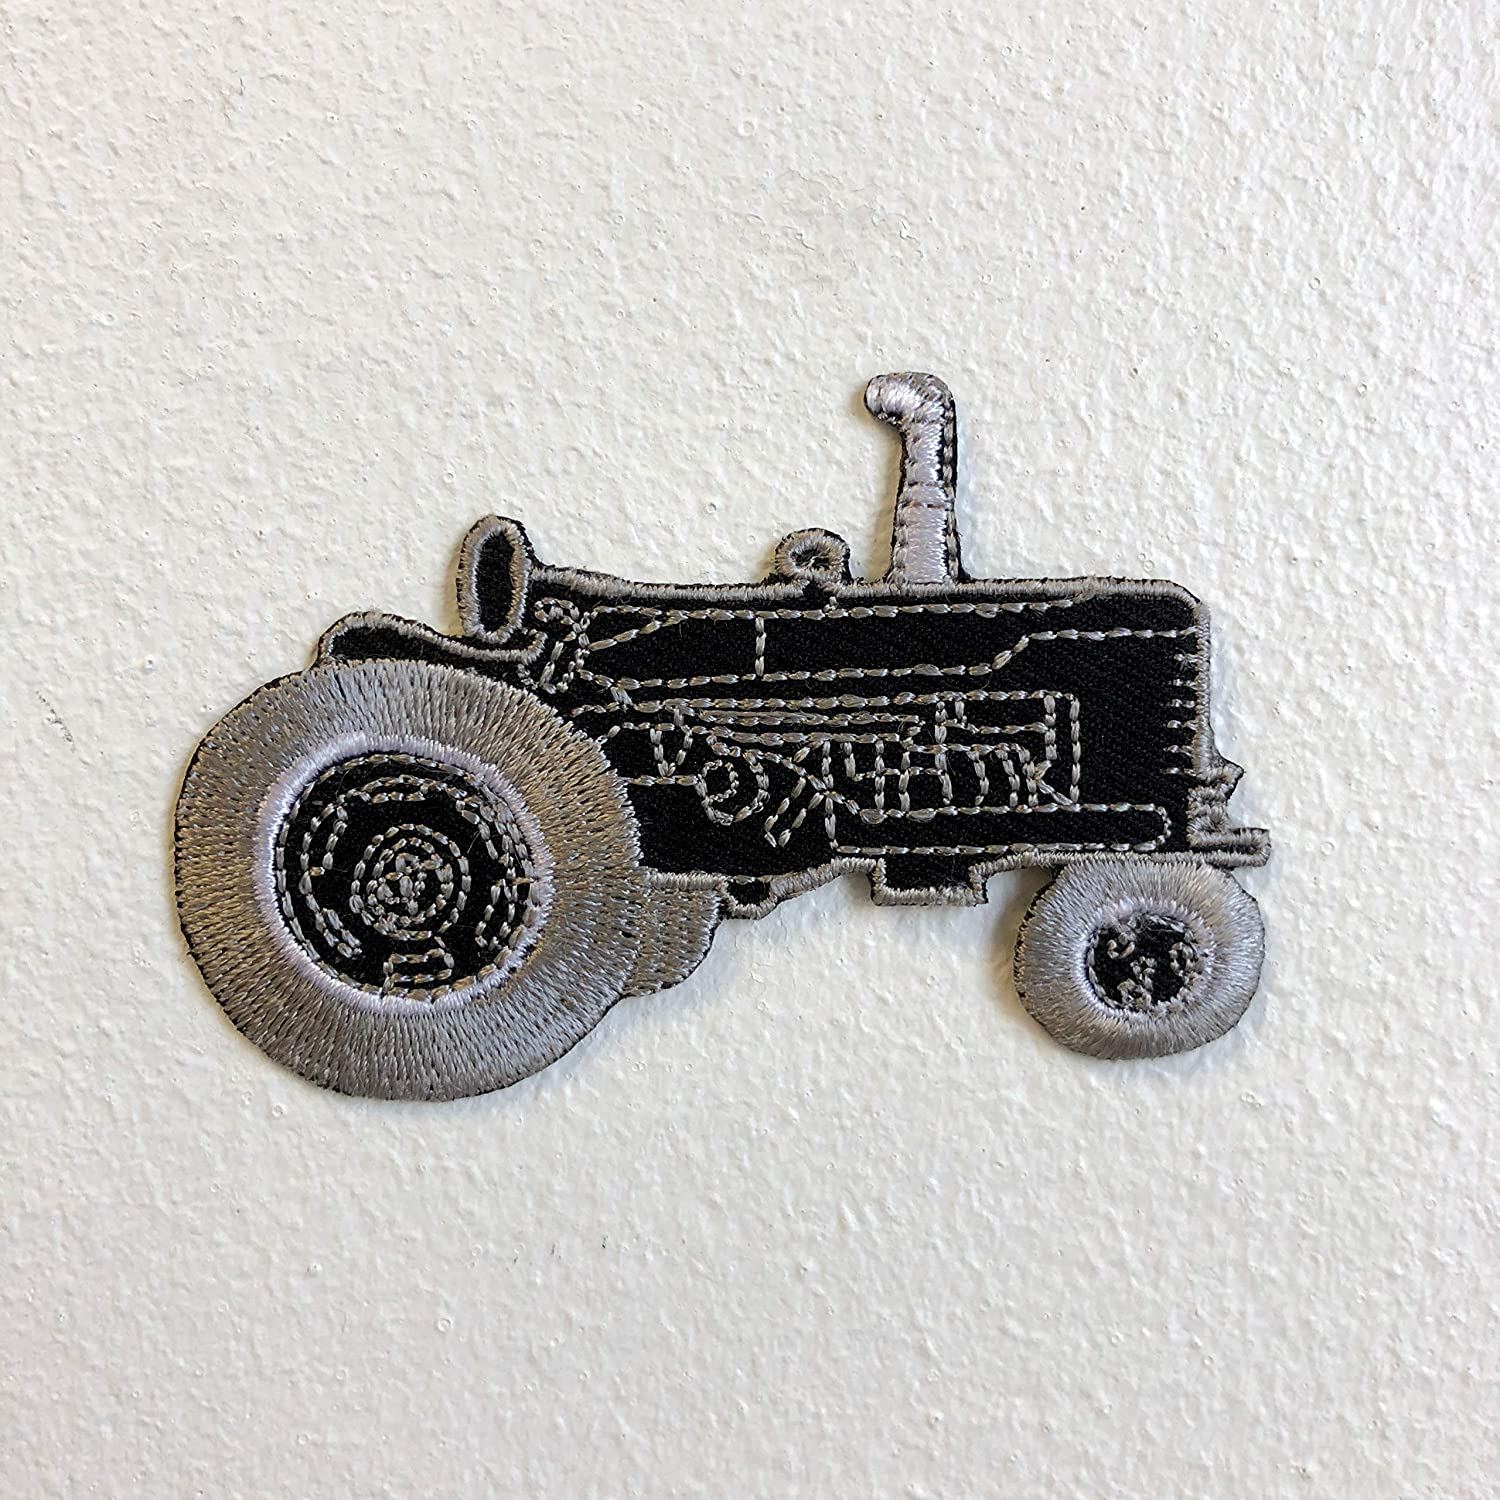 Farming Tractor Black Iron Sew on Embroidered Patch GK - Patches